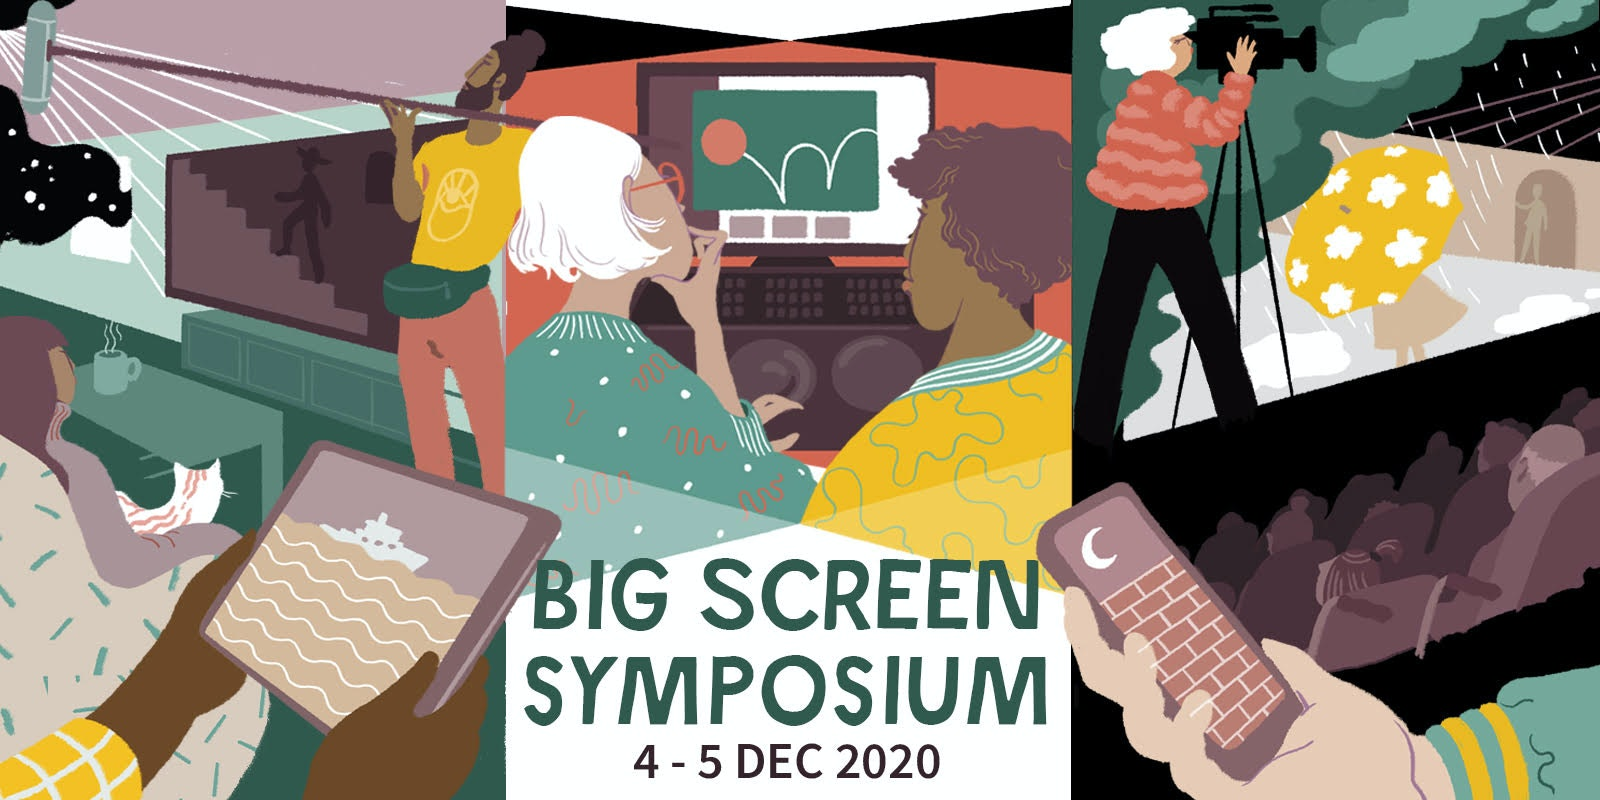 Big Screen Symposium